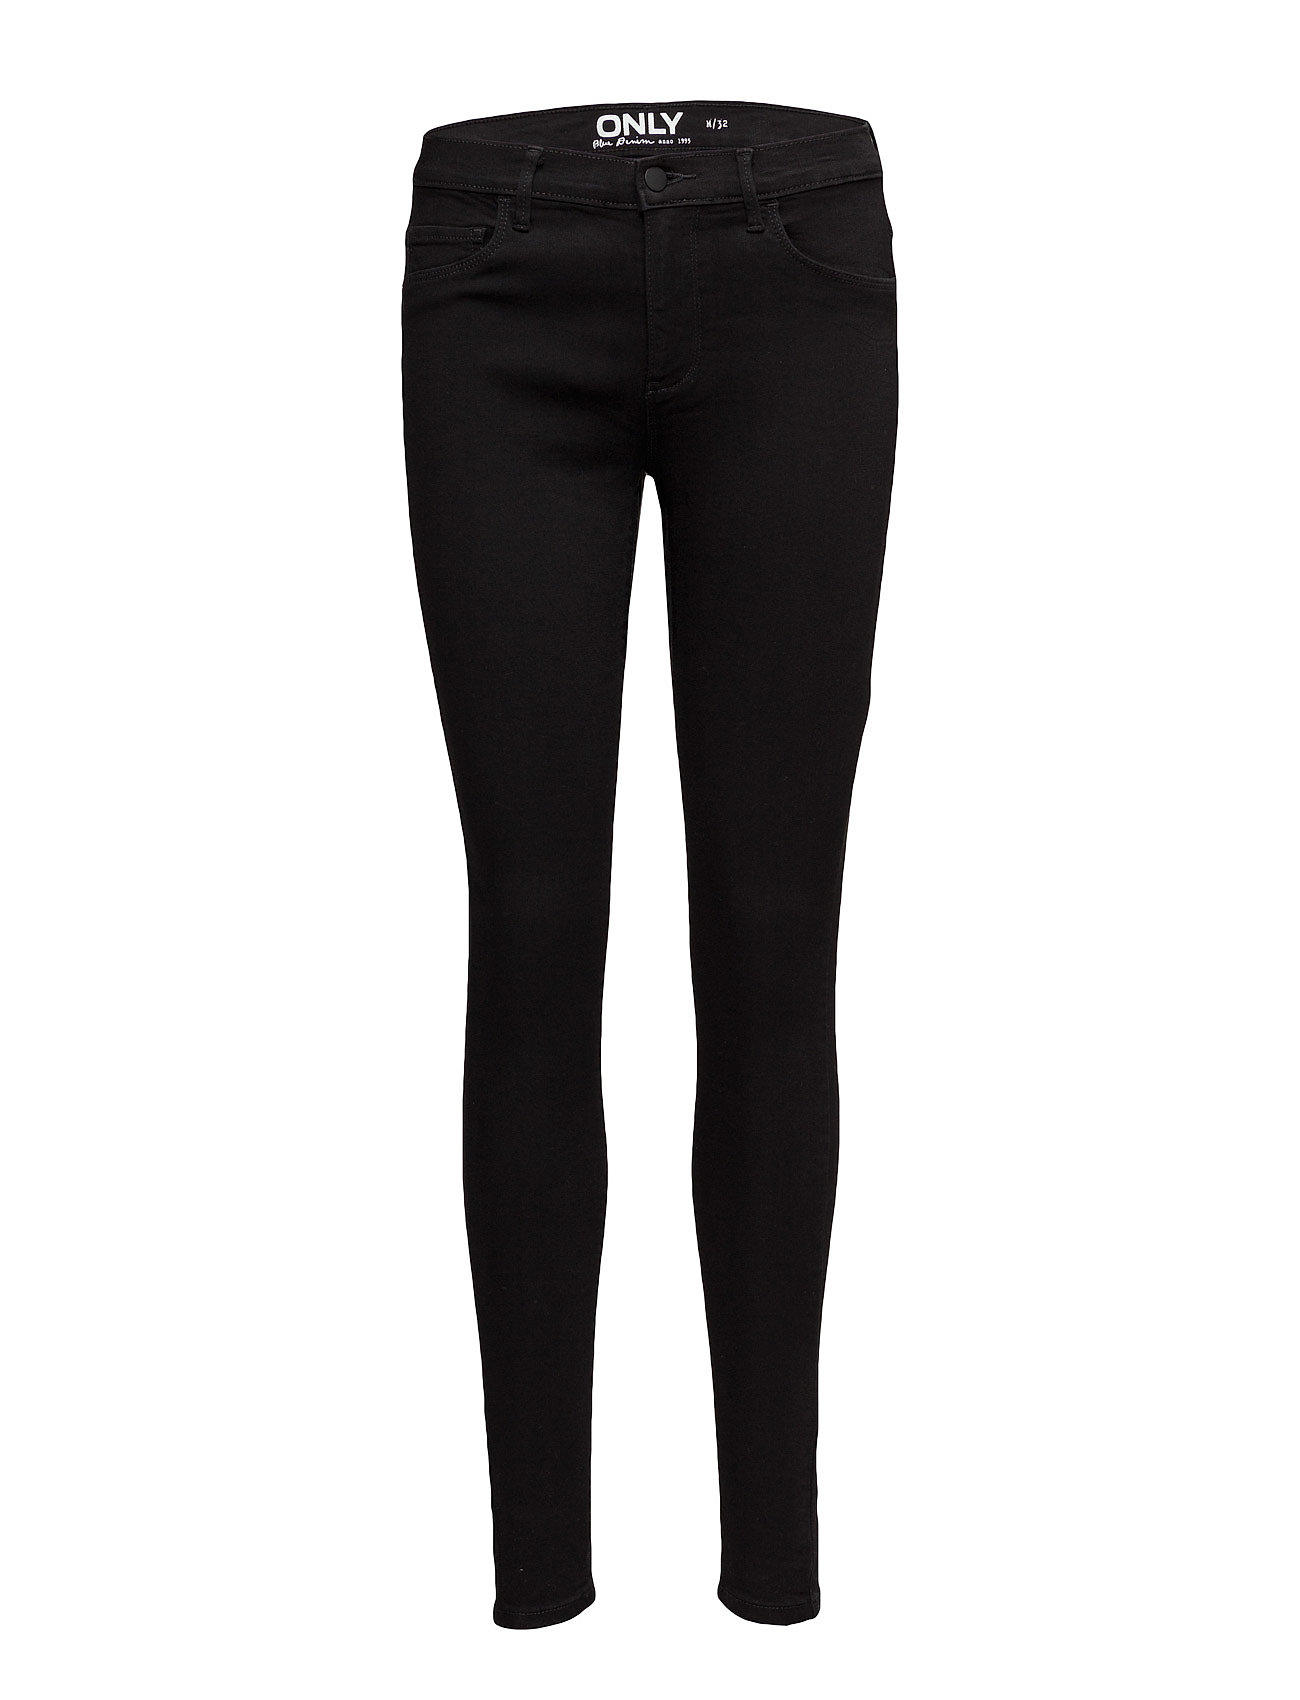 Onlrain Reg Skinny Jeans Cry6060 Noos thumbnail